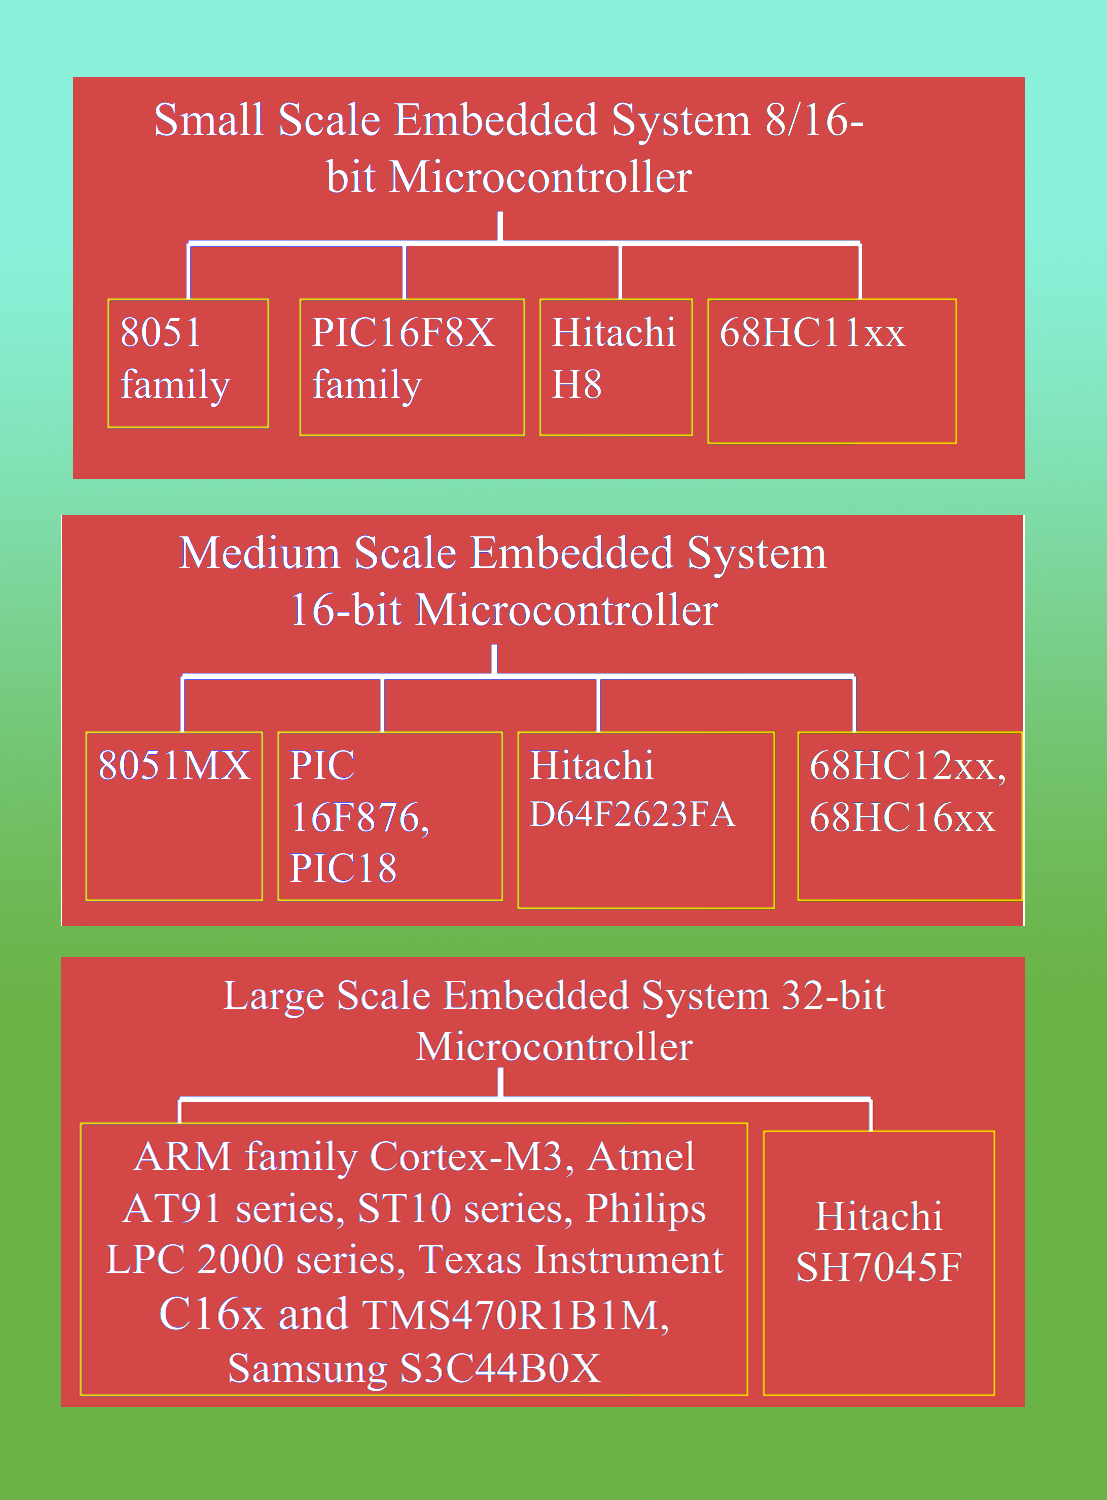 The Building Blocks Of Embedded Systems Its All About Microprocessor Dedicated Logic Circuit If Your Processing Power And Memory Requirements Are High You Need To Choose A 16 Bit Or 32 Processor